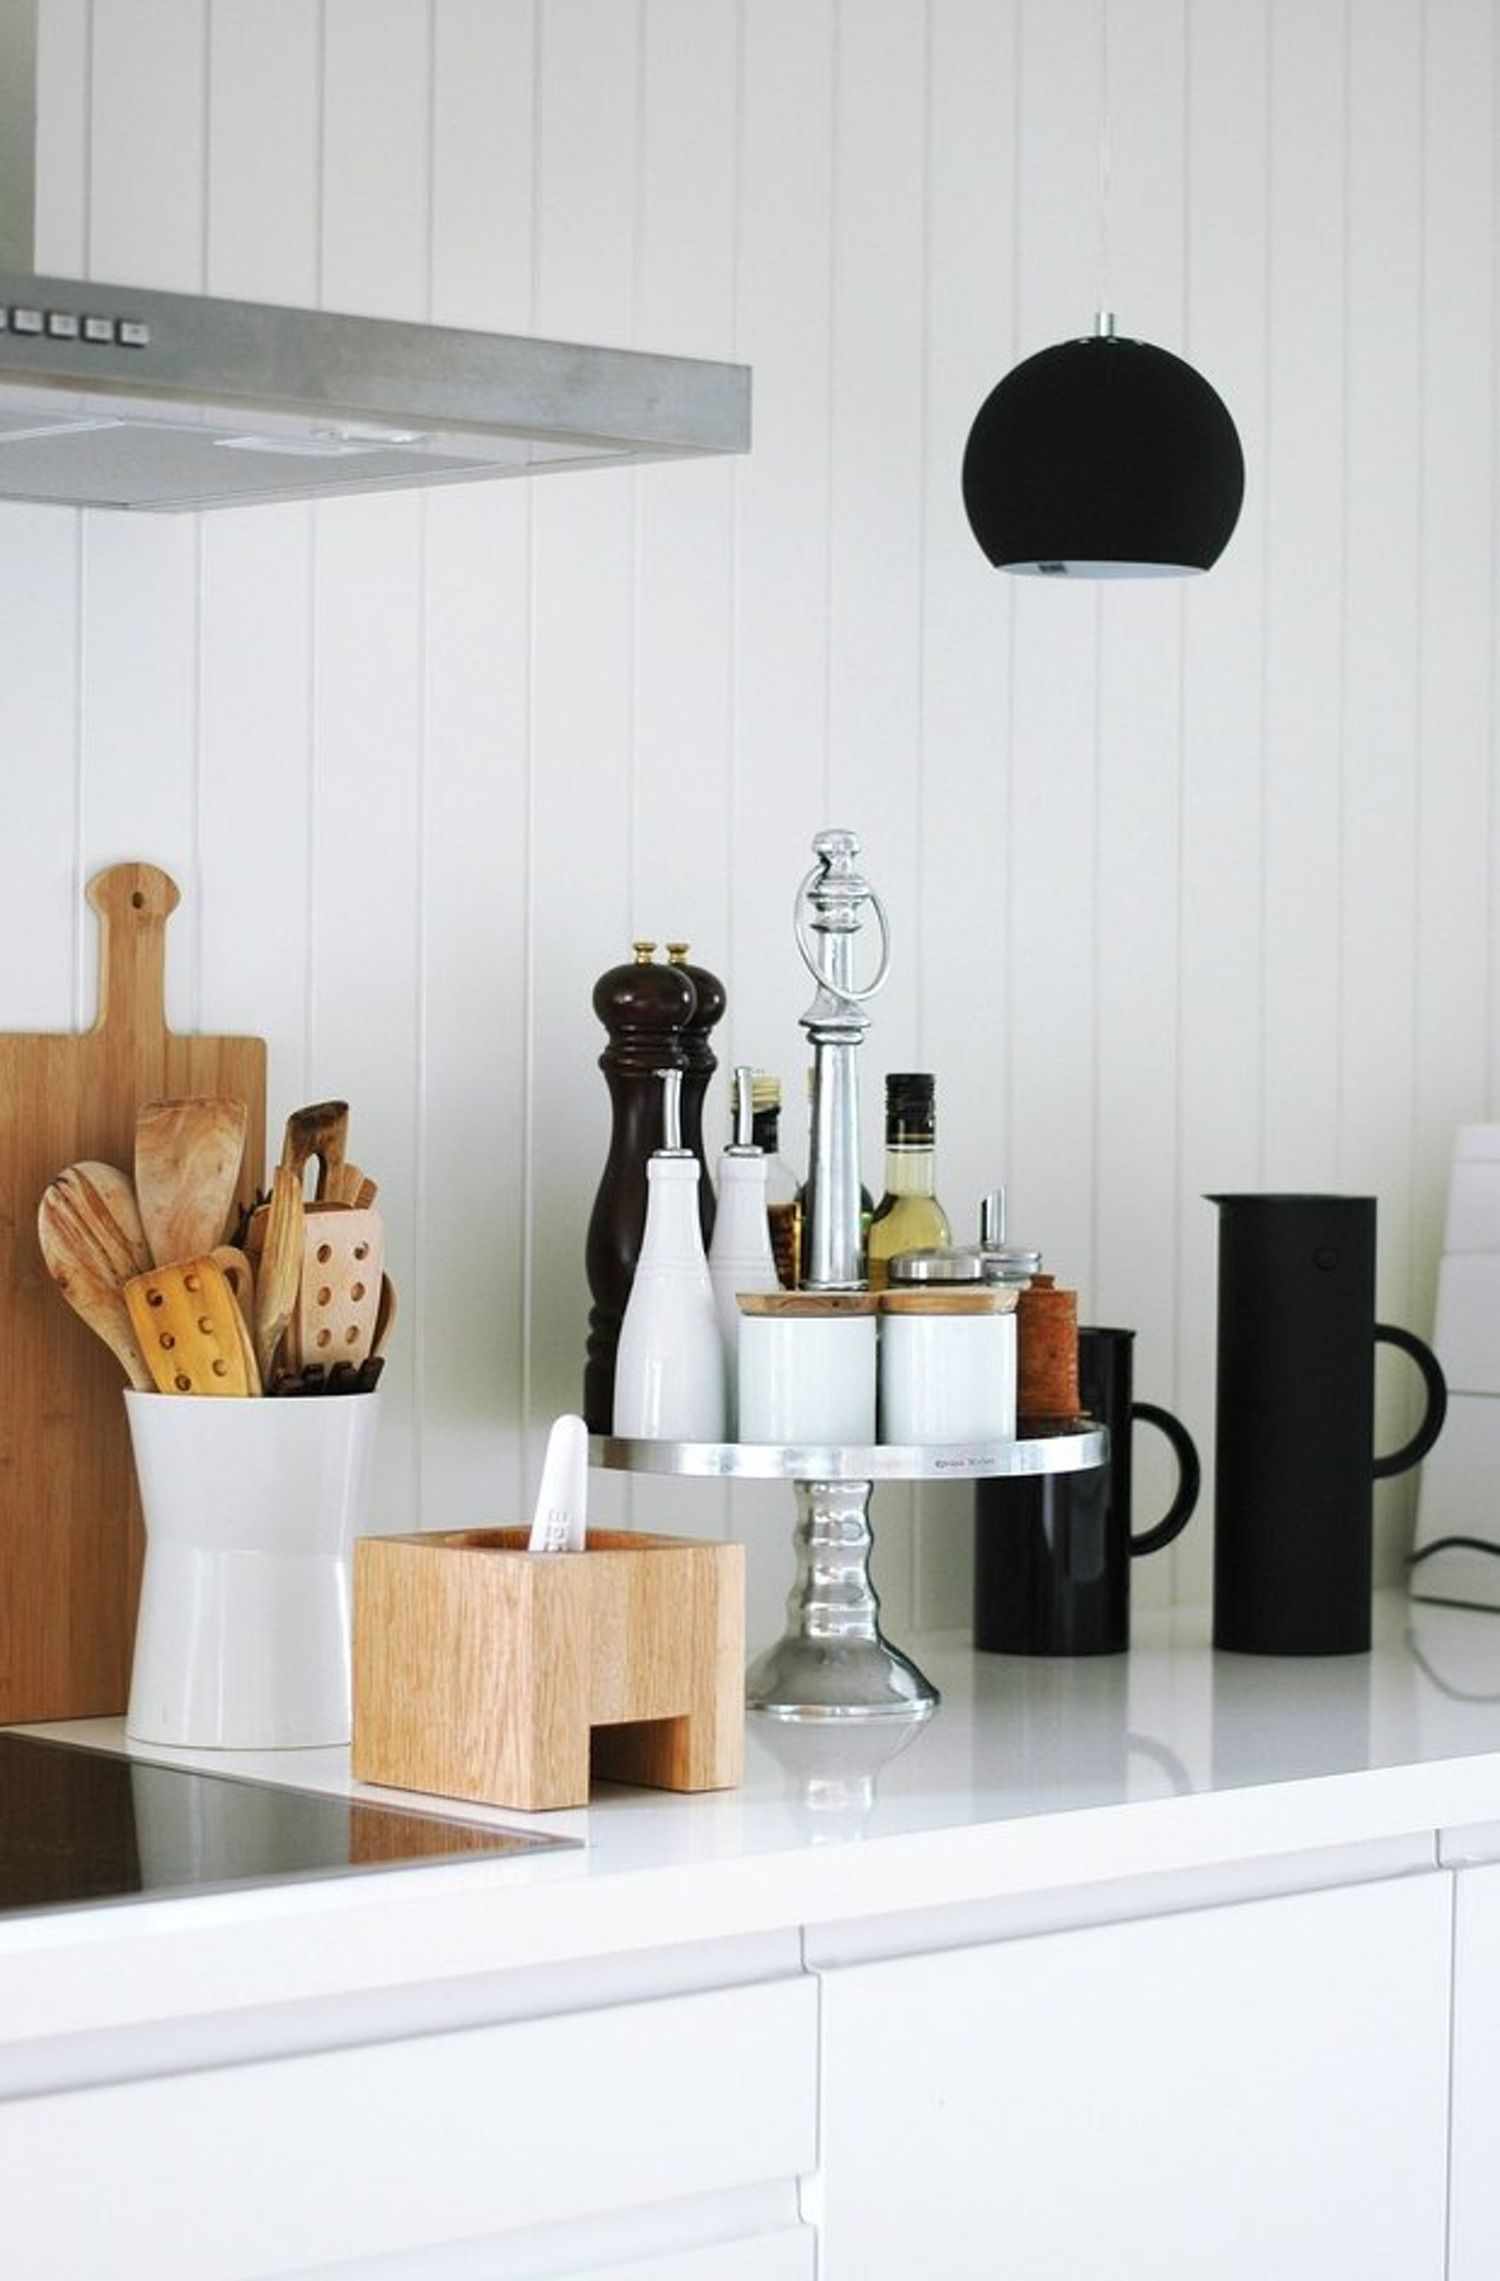 10 Pretty Ways to Keep Your Countertop Organized | Pinterest ...